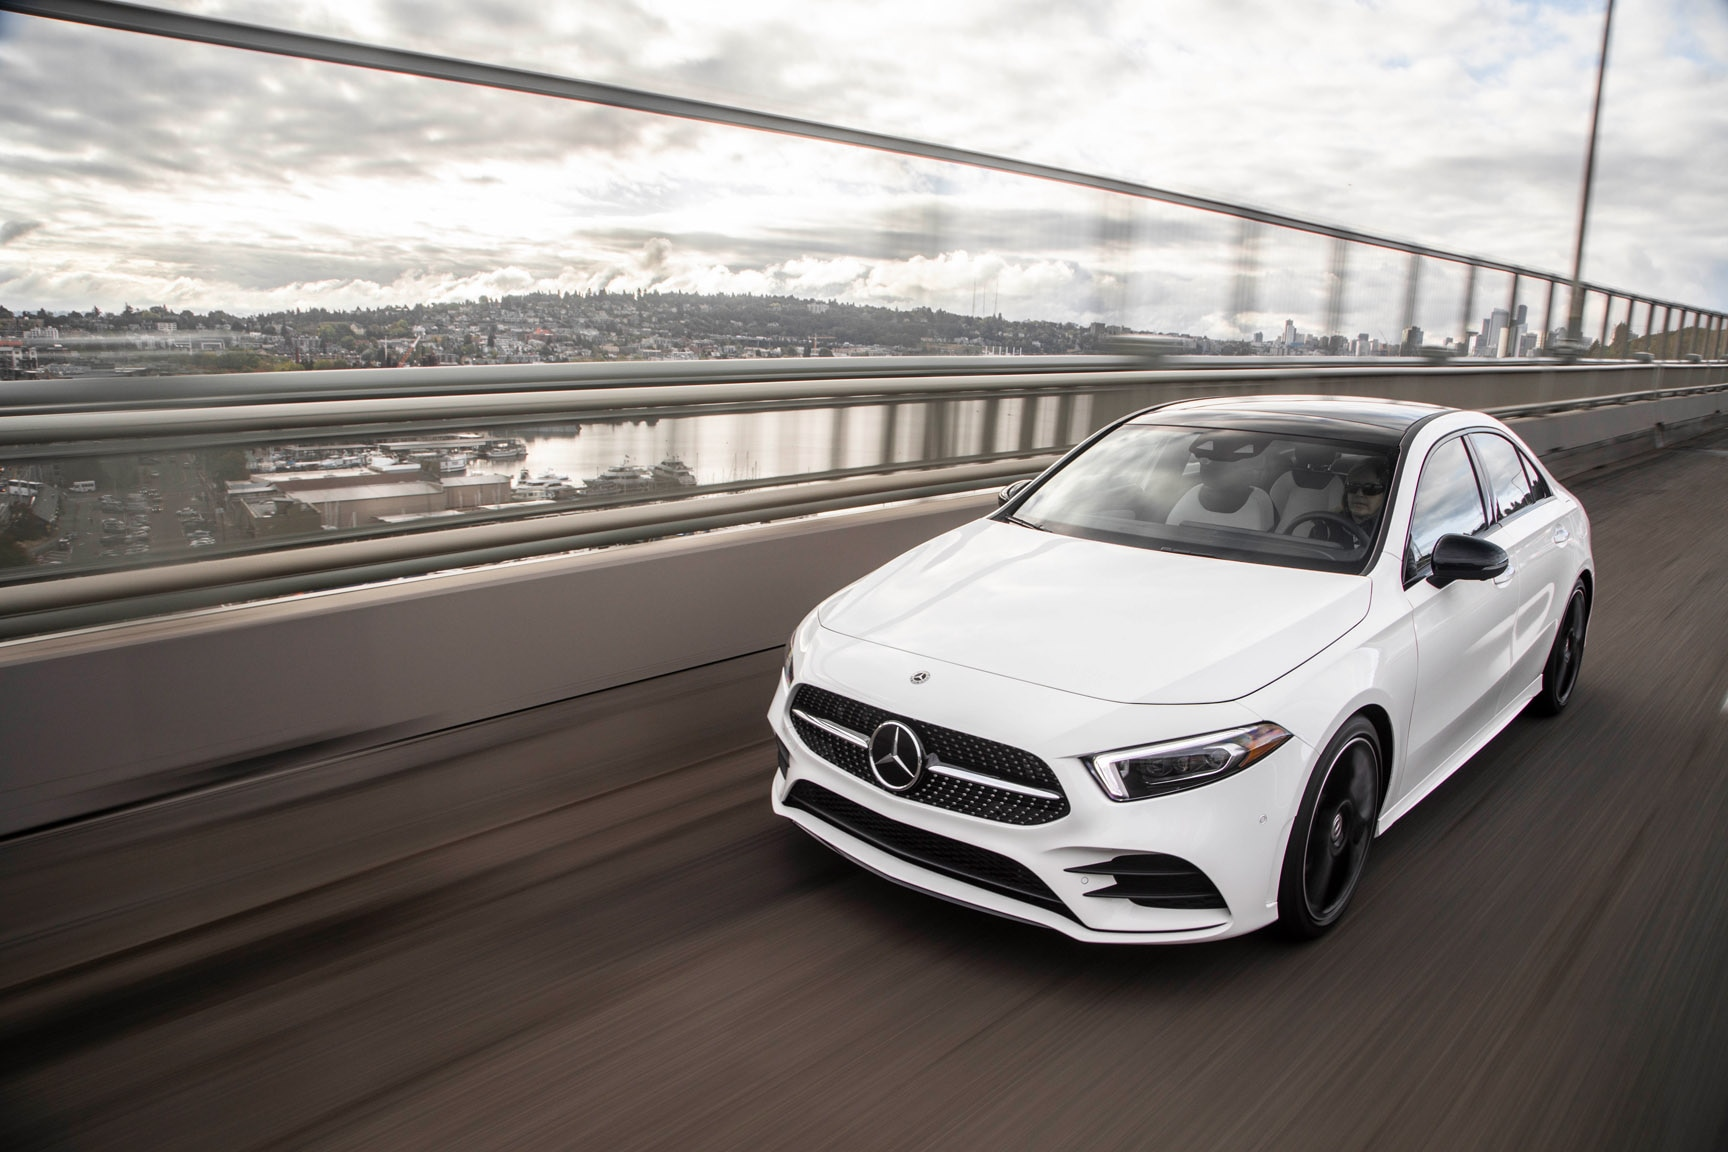 2019 Mercedes-Benz A220 First Drive Review | Automobile ...